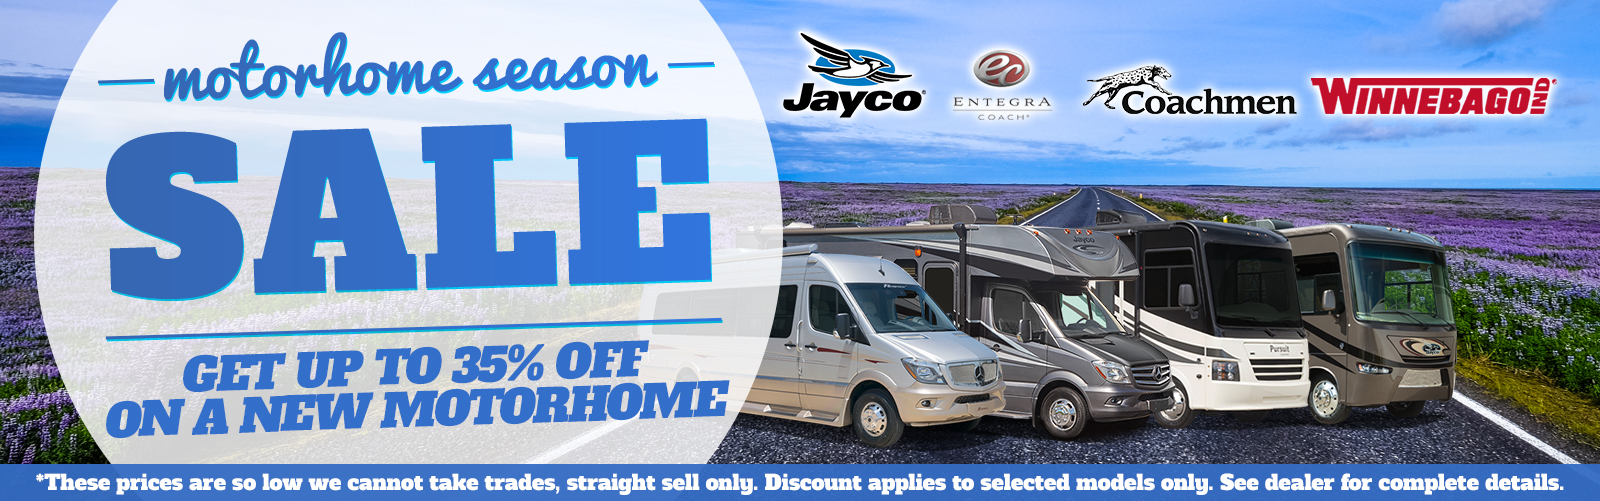 Bill Plemmons RV Motorhome Sale